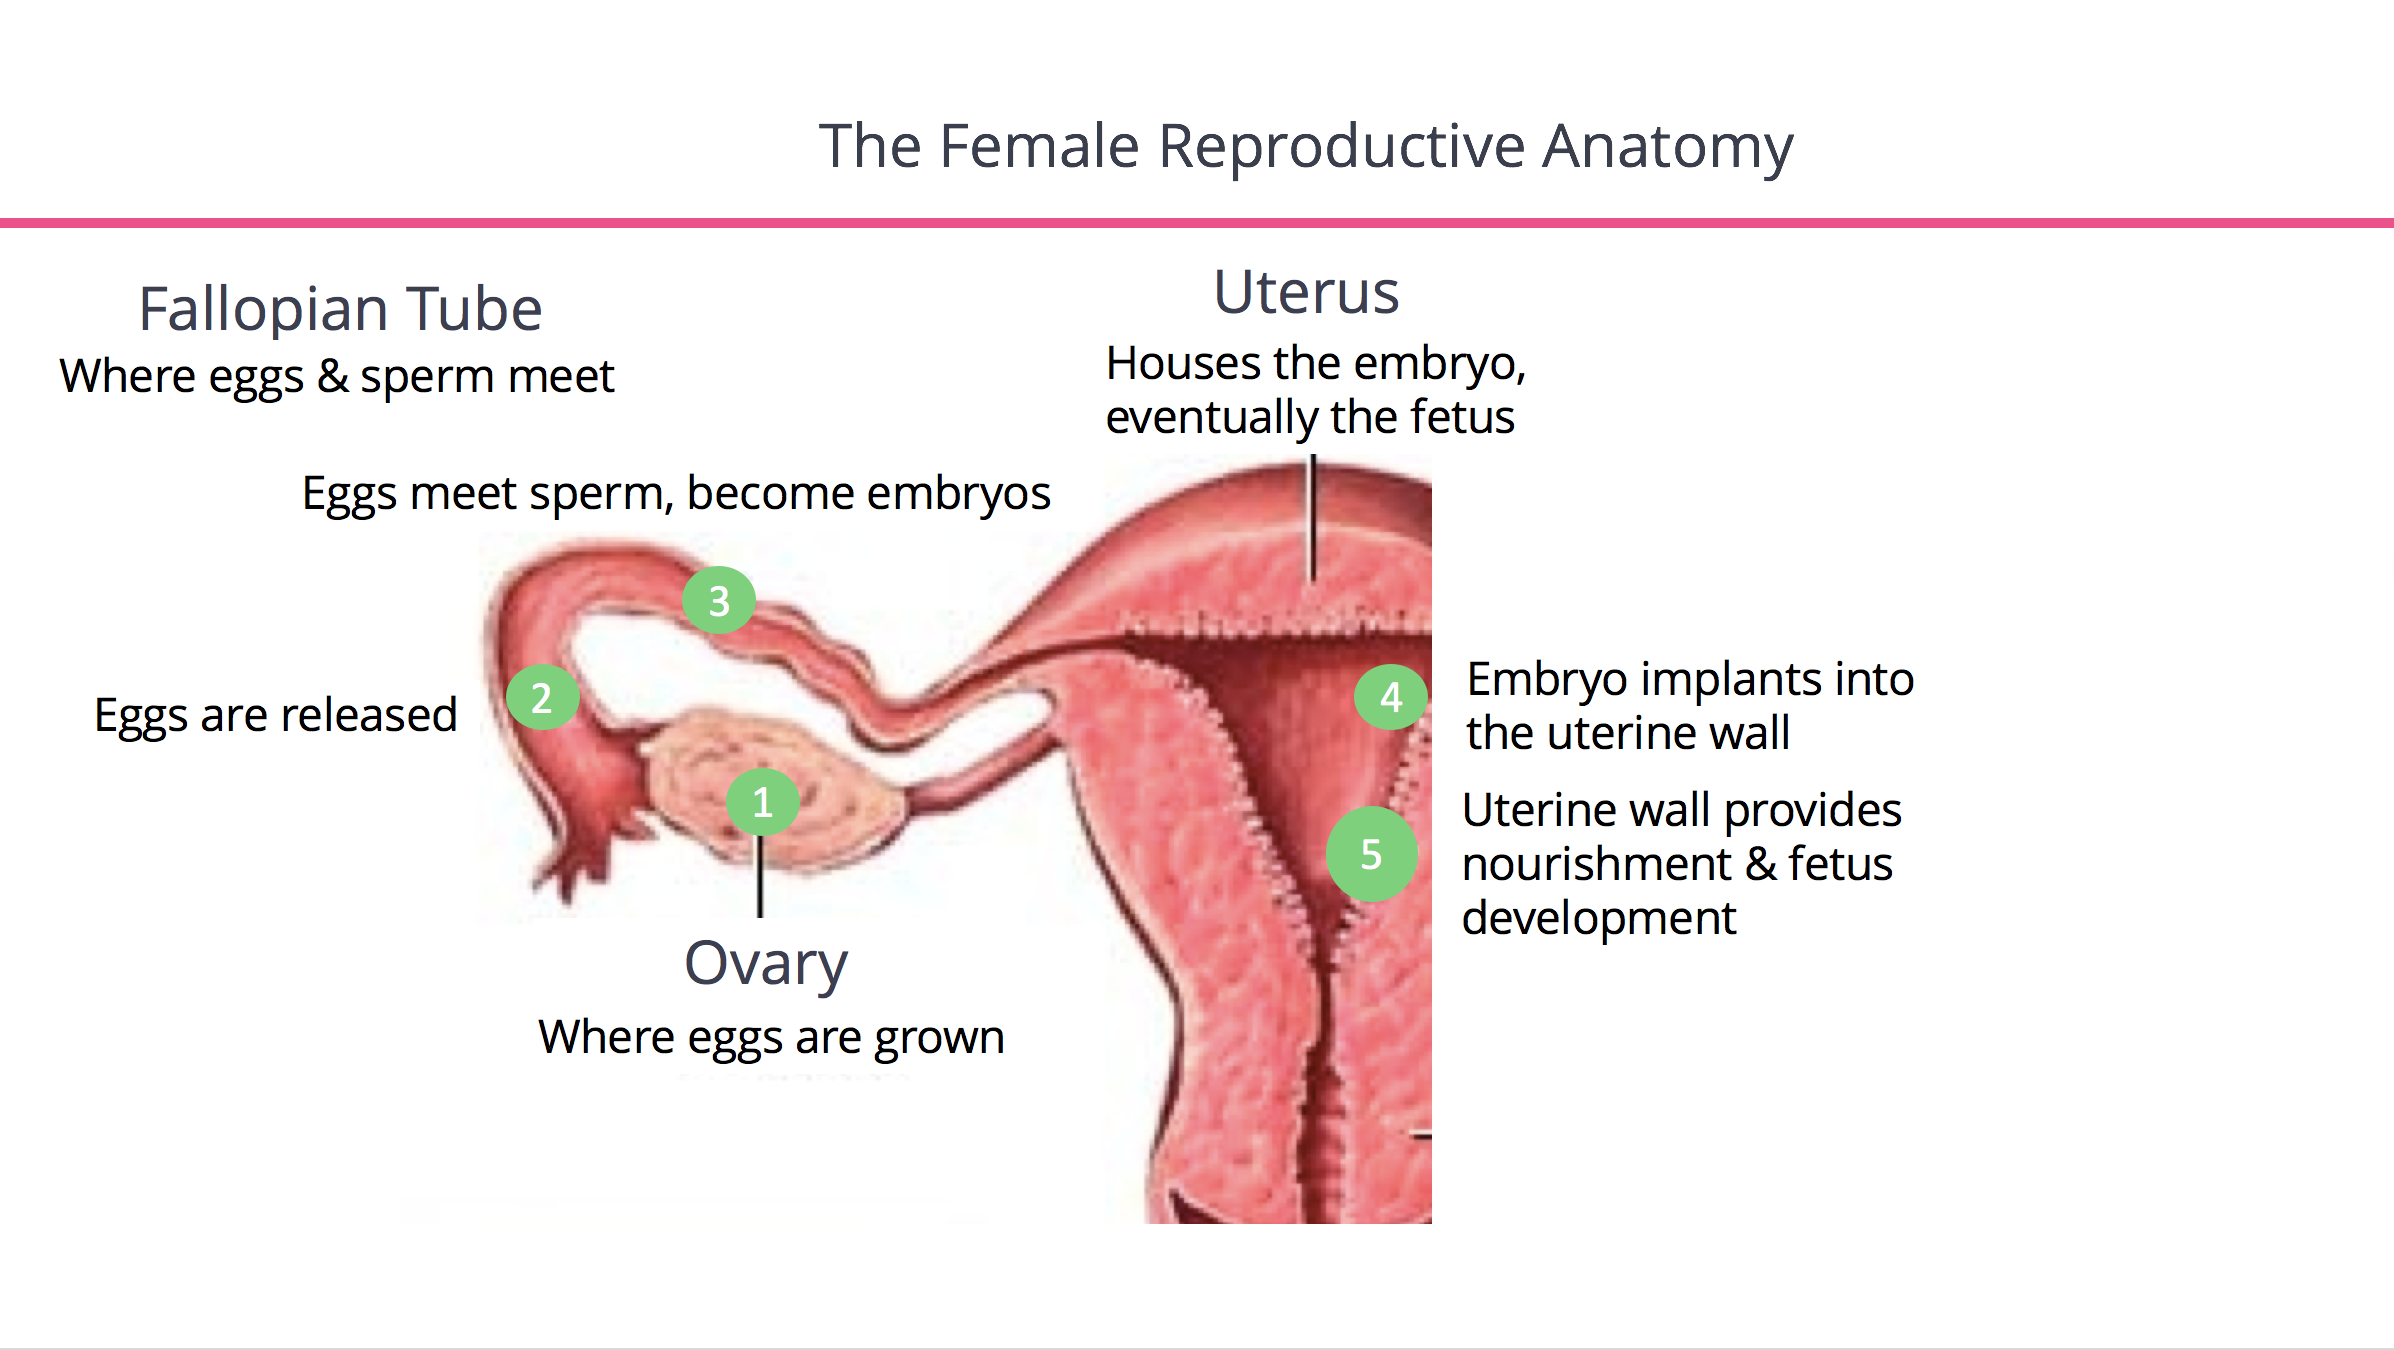 The Female Reproductive Anatomy